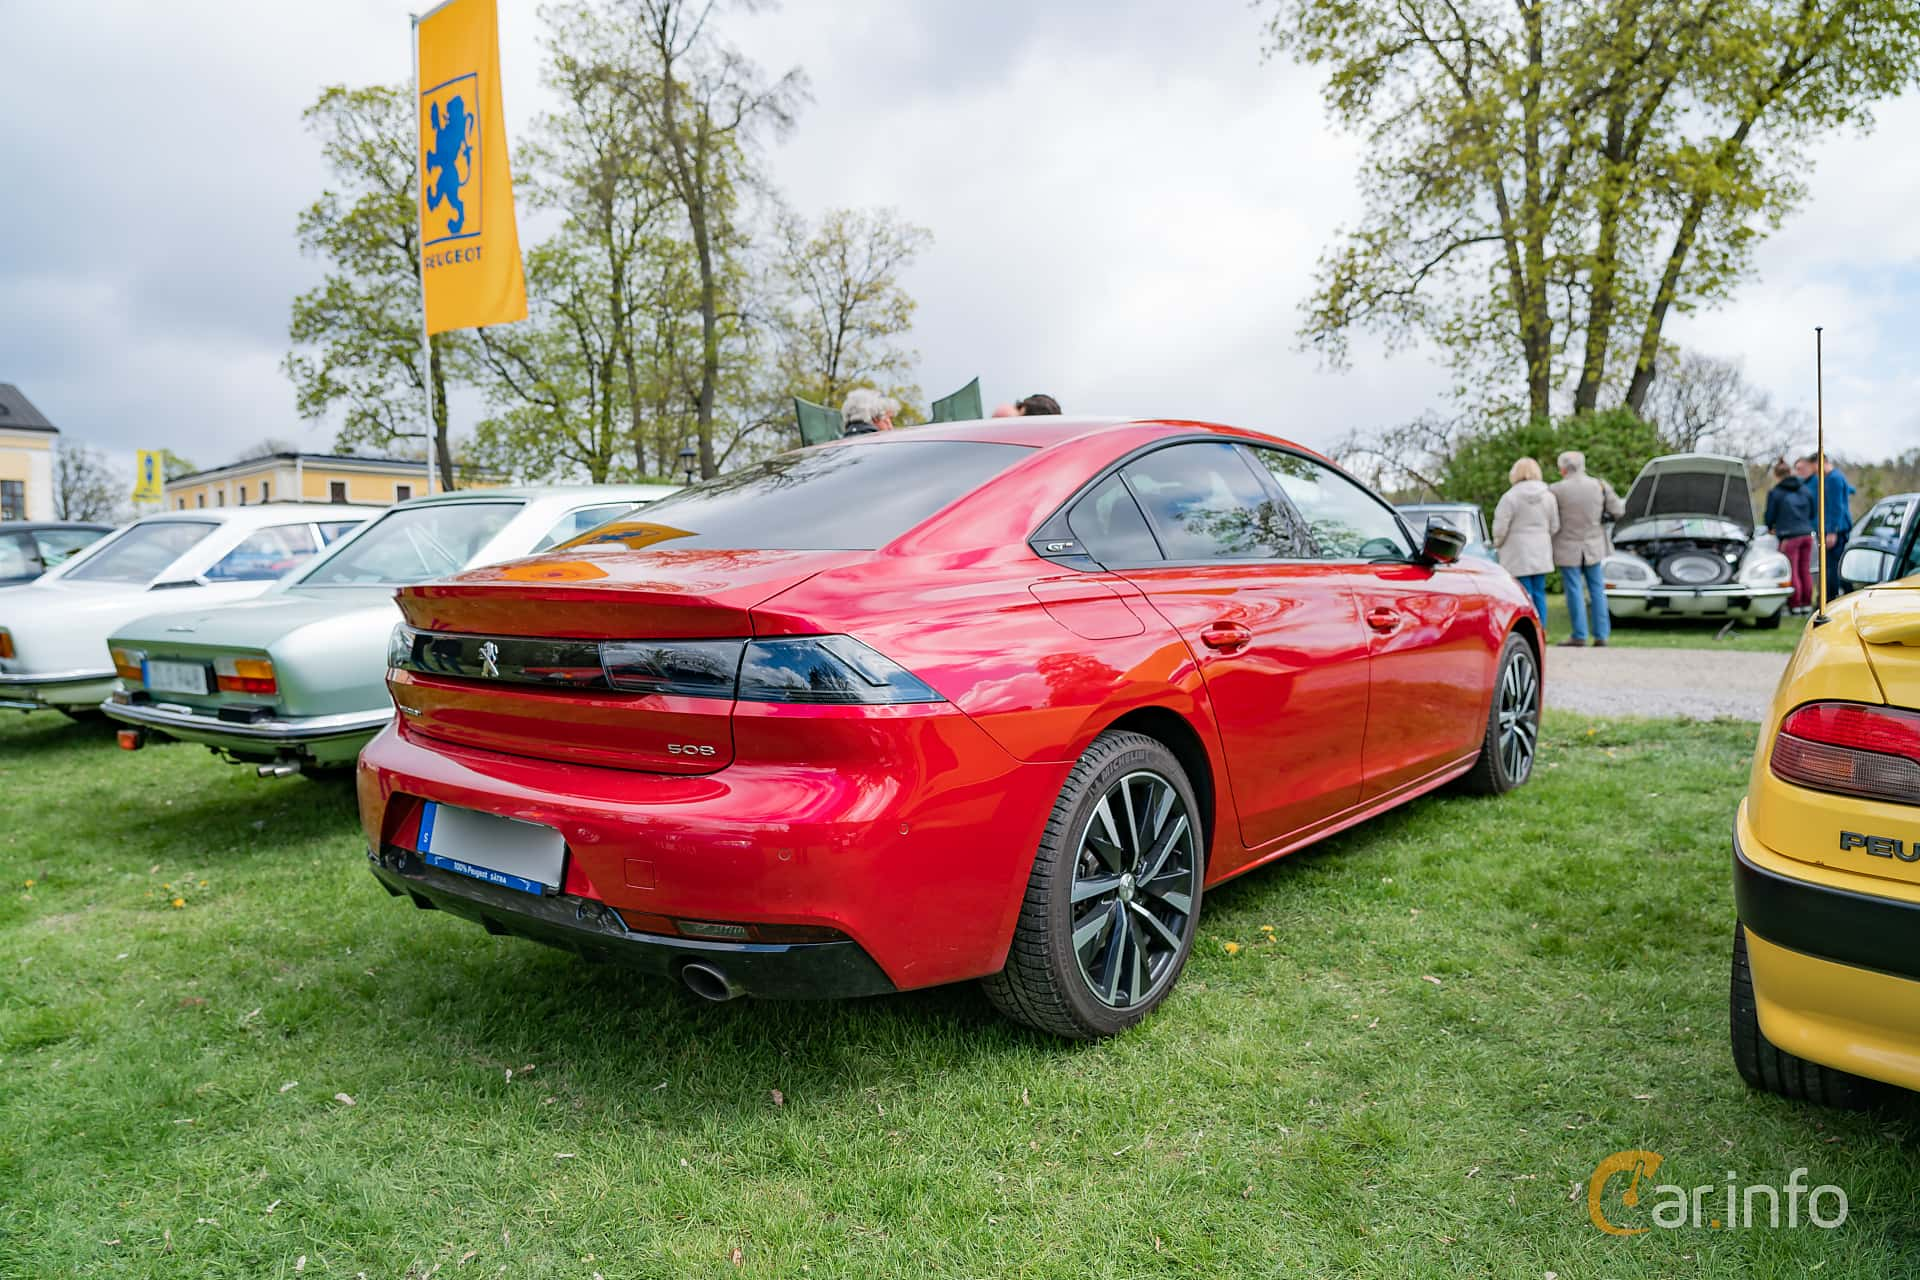 Back/Side of Peugeot 508 GT 1.6 PureTech EAT, 225ps, 2018 at Fest För Franska Fordon  på Taxinge slott 2019